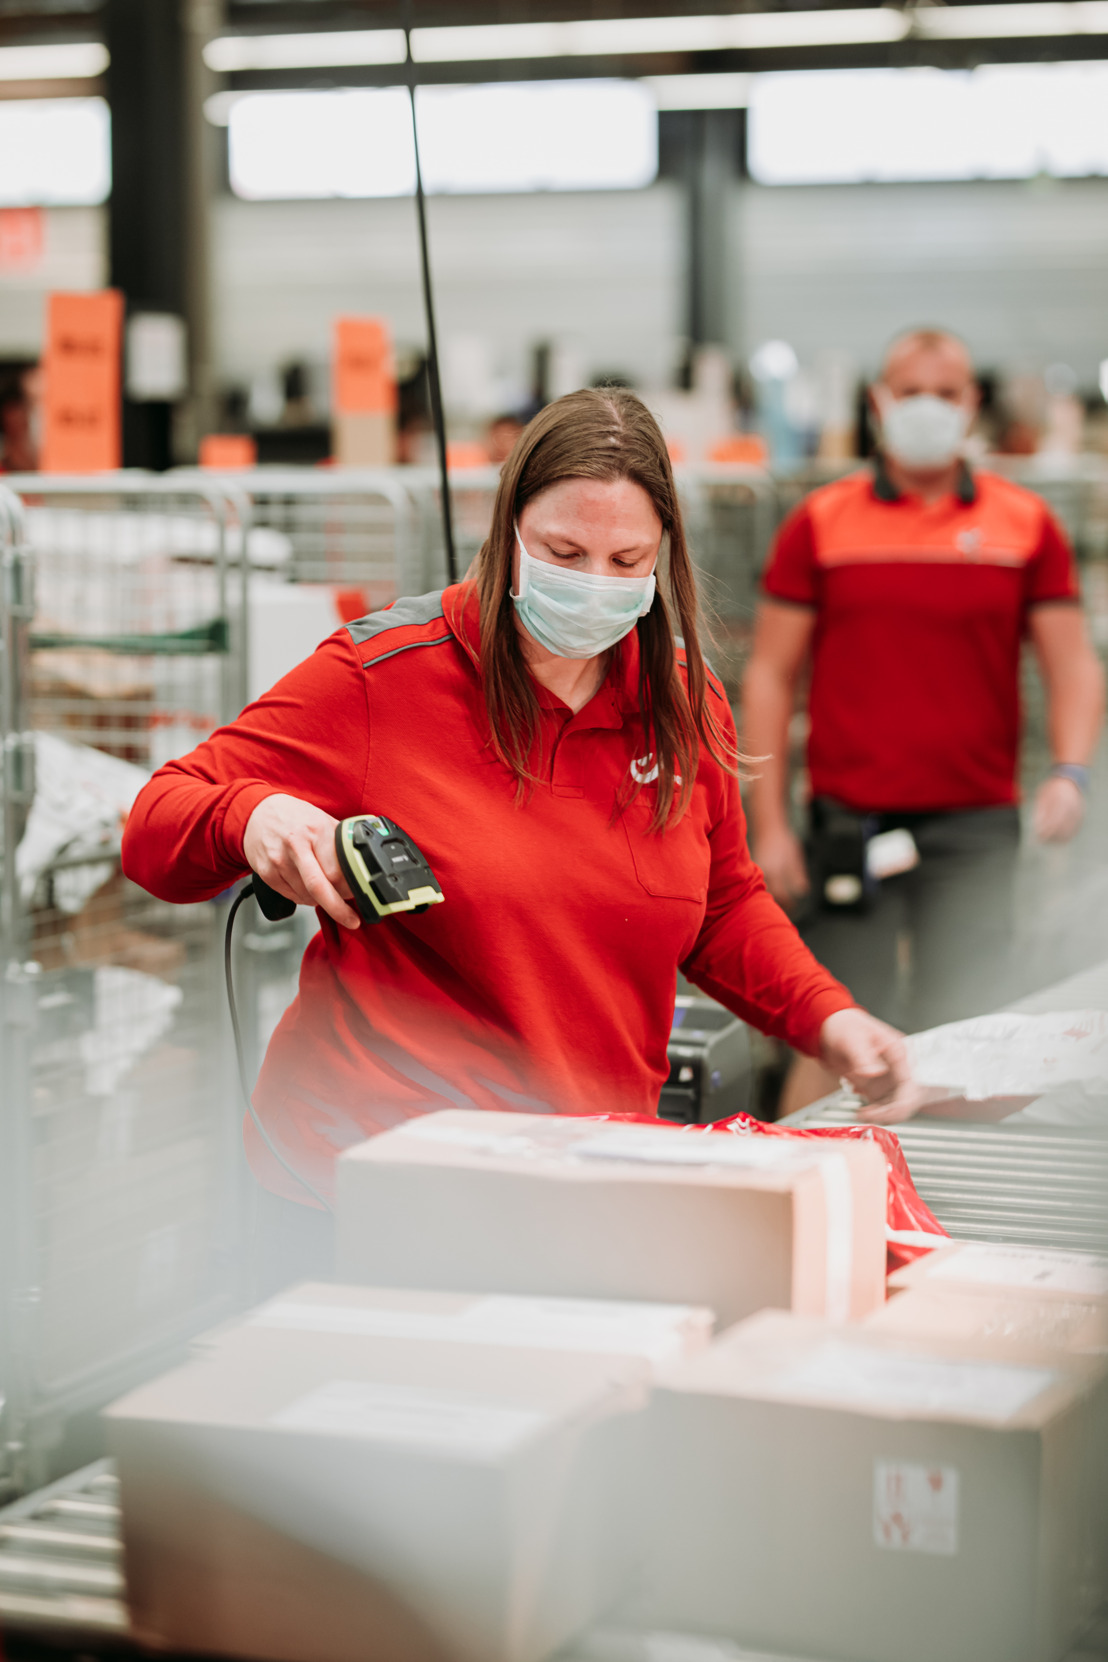 bpost fourth quarter 2020 results in line with expectations